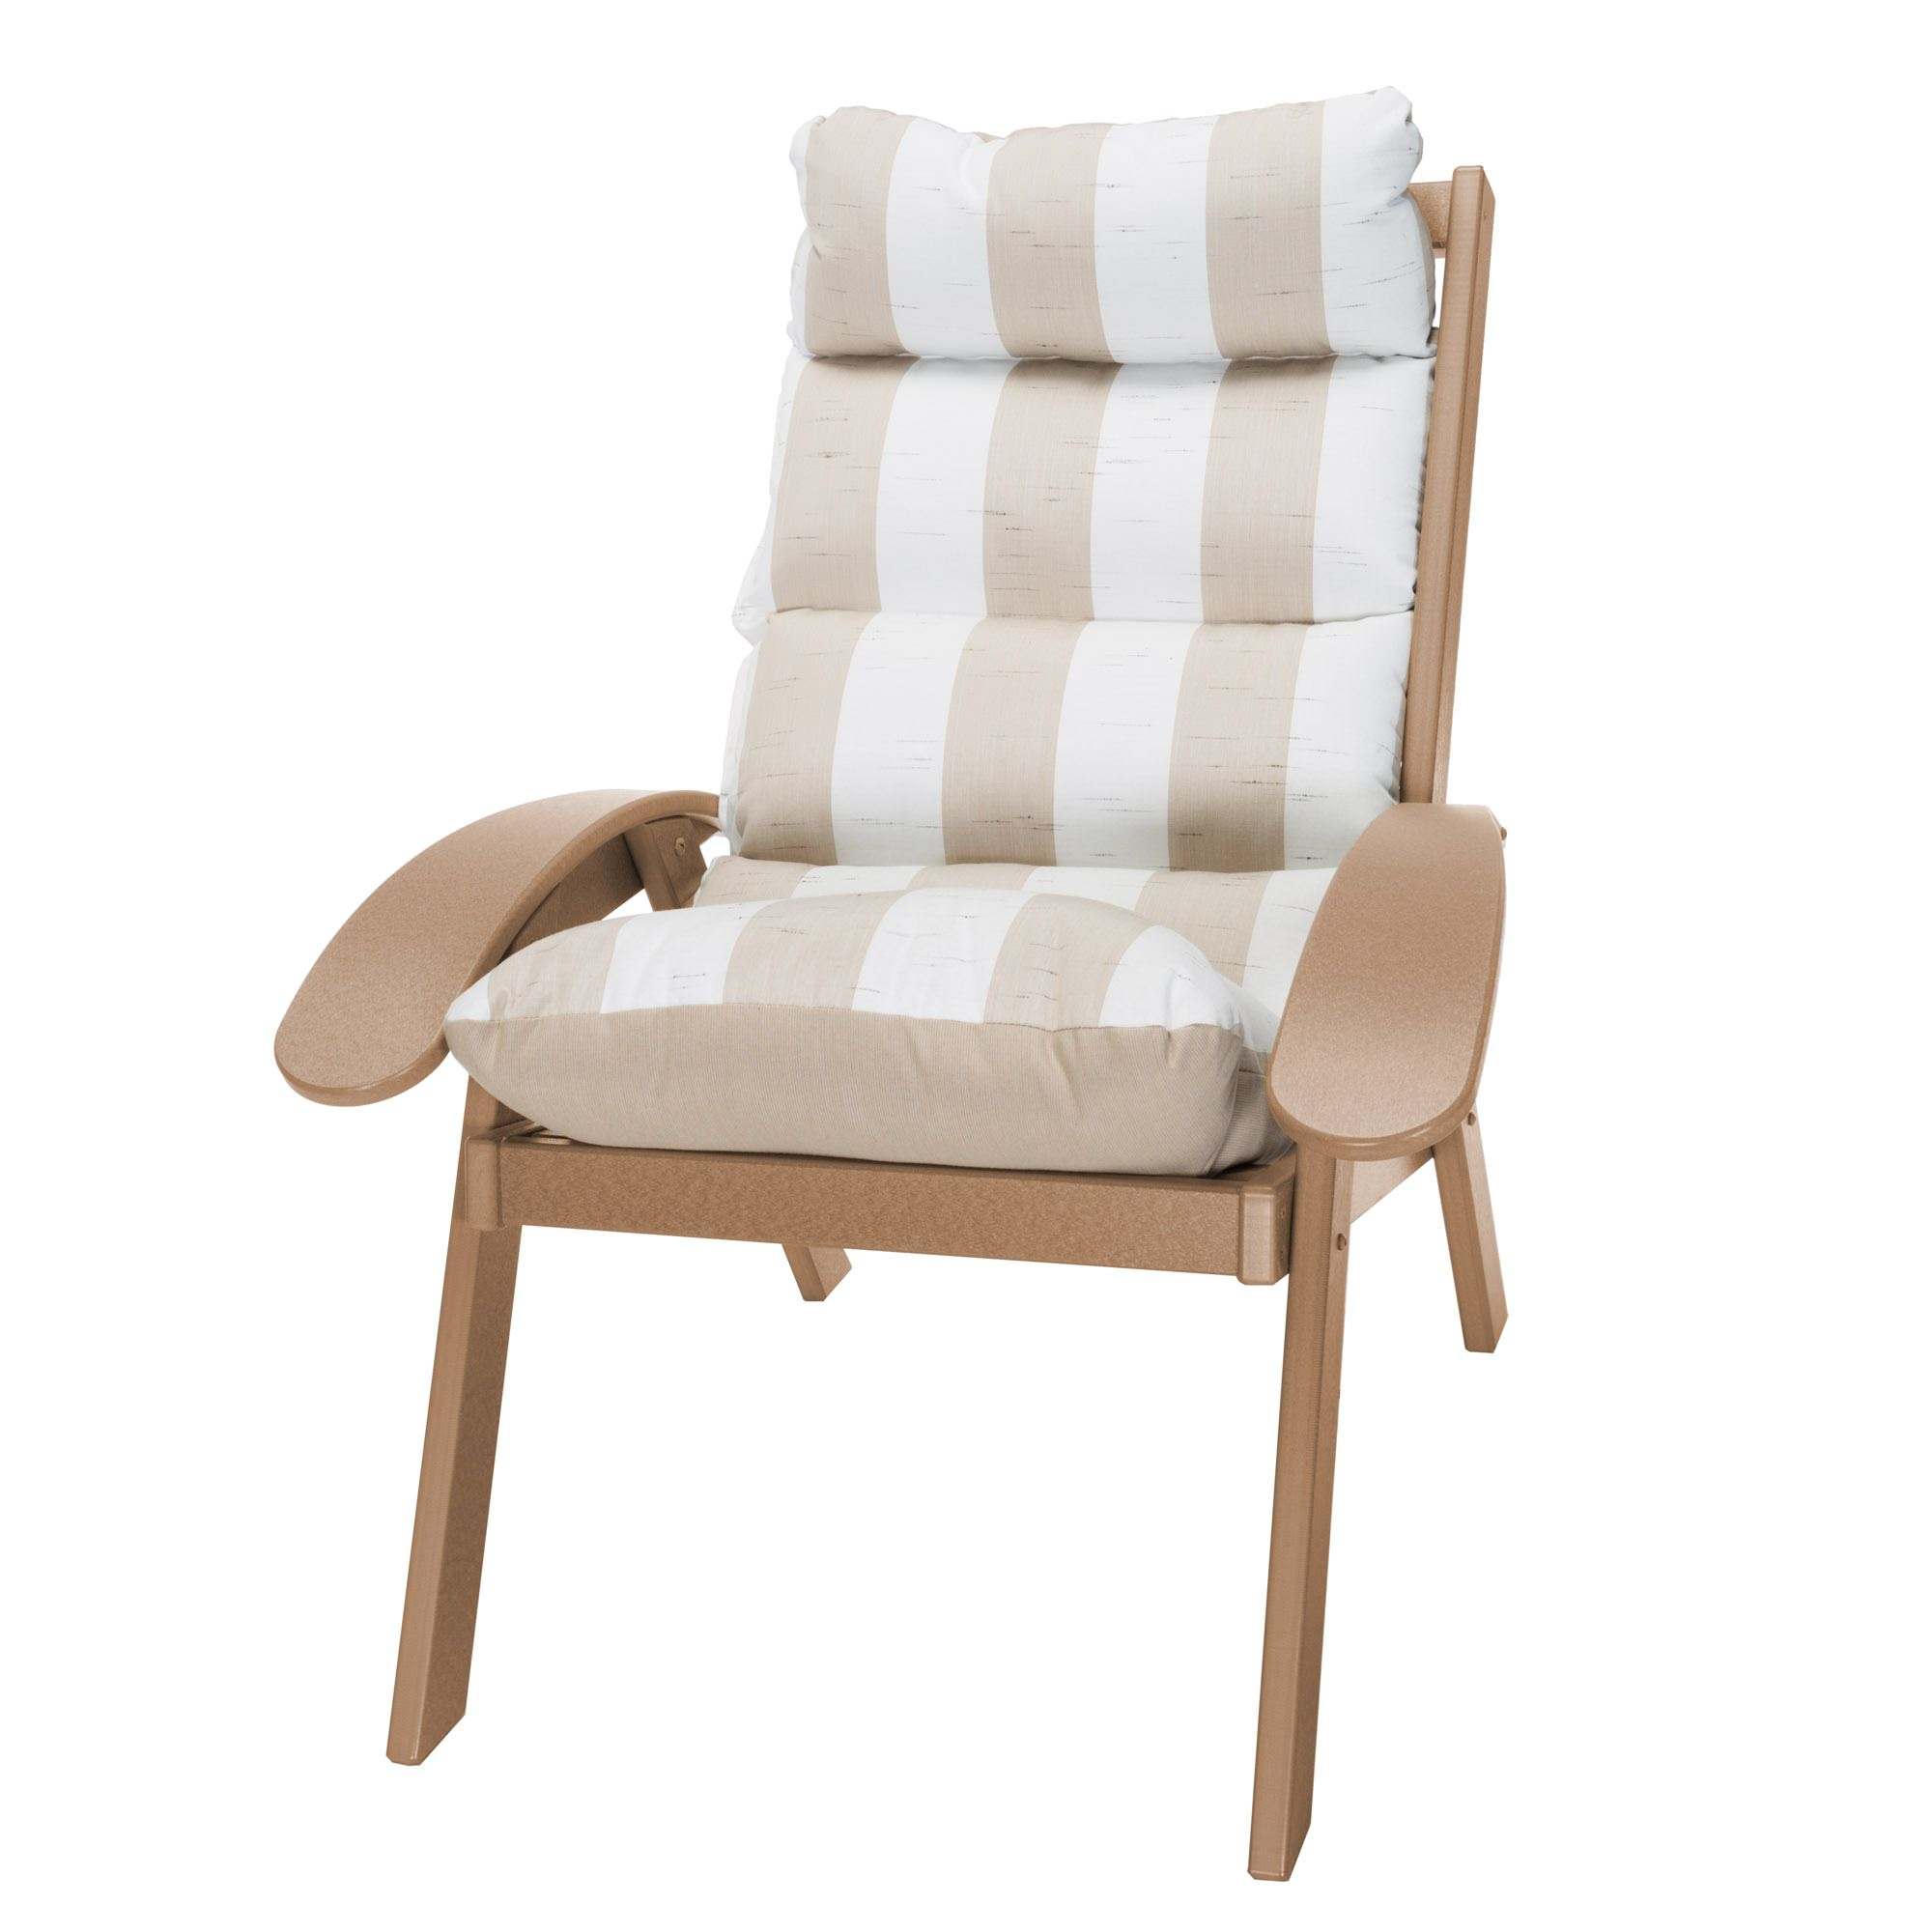 Island Chair Coastal Cedar Cushion Chair Pawleys Island Furniture